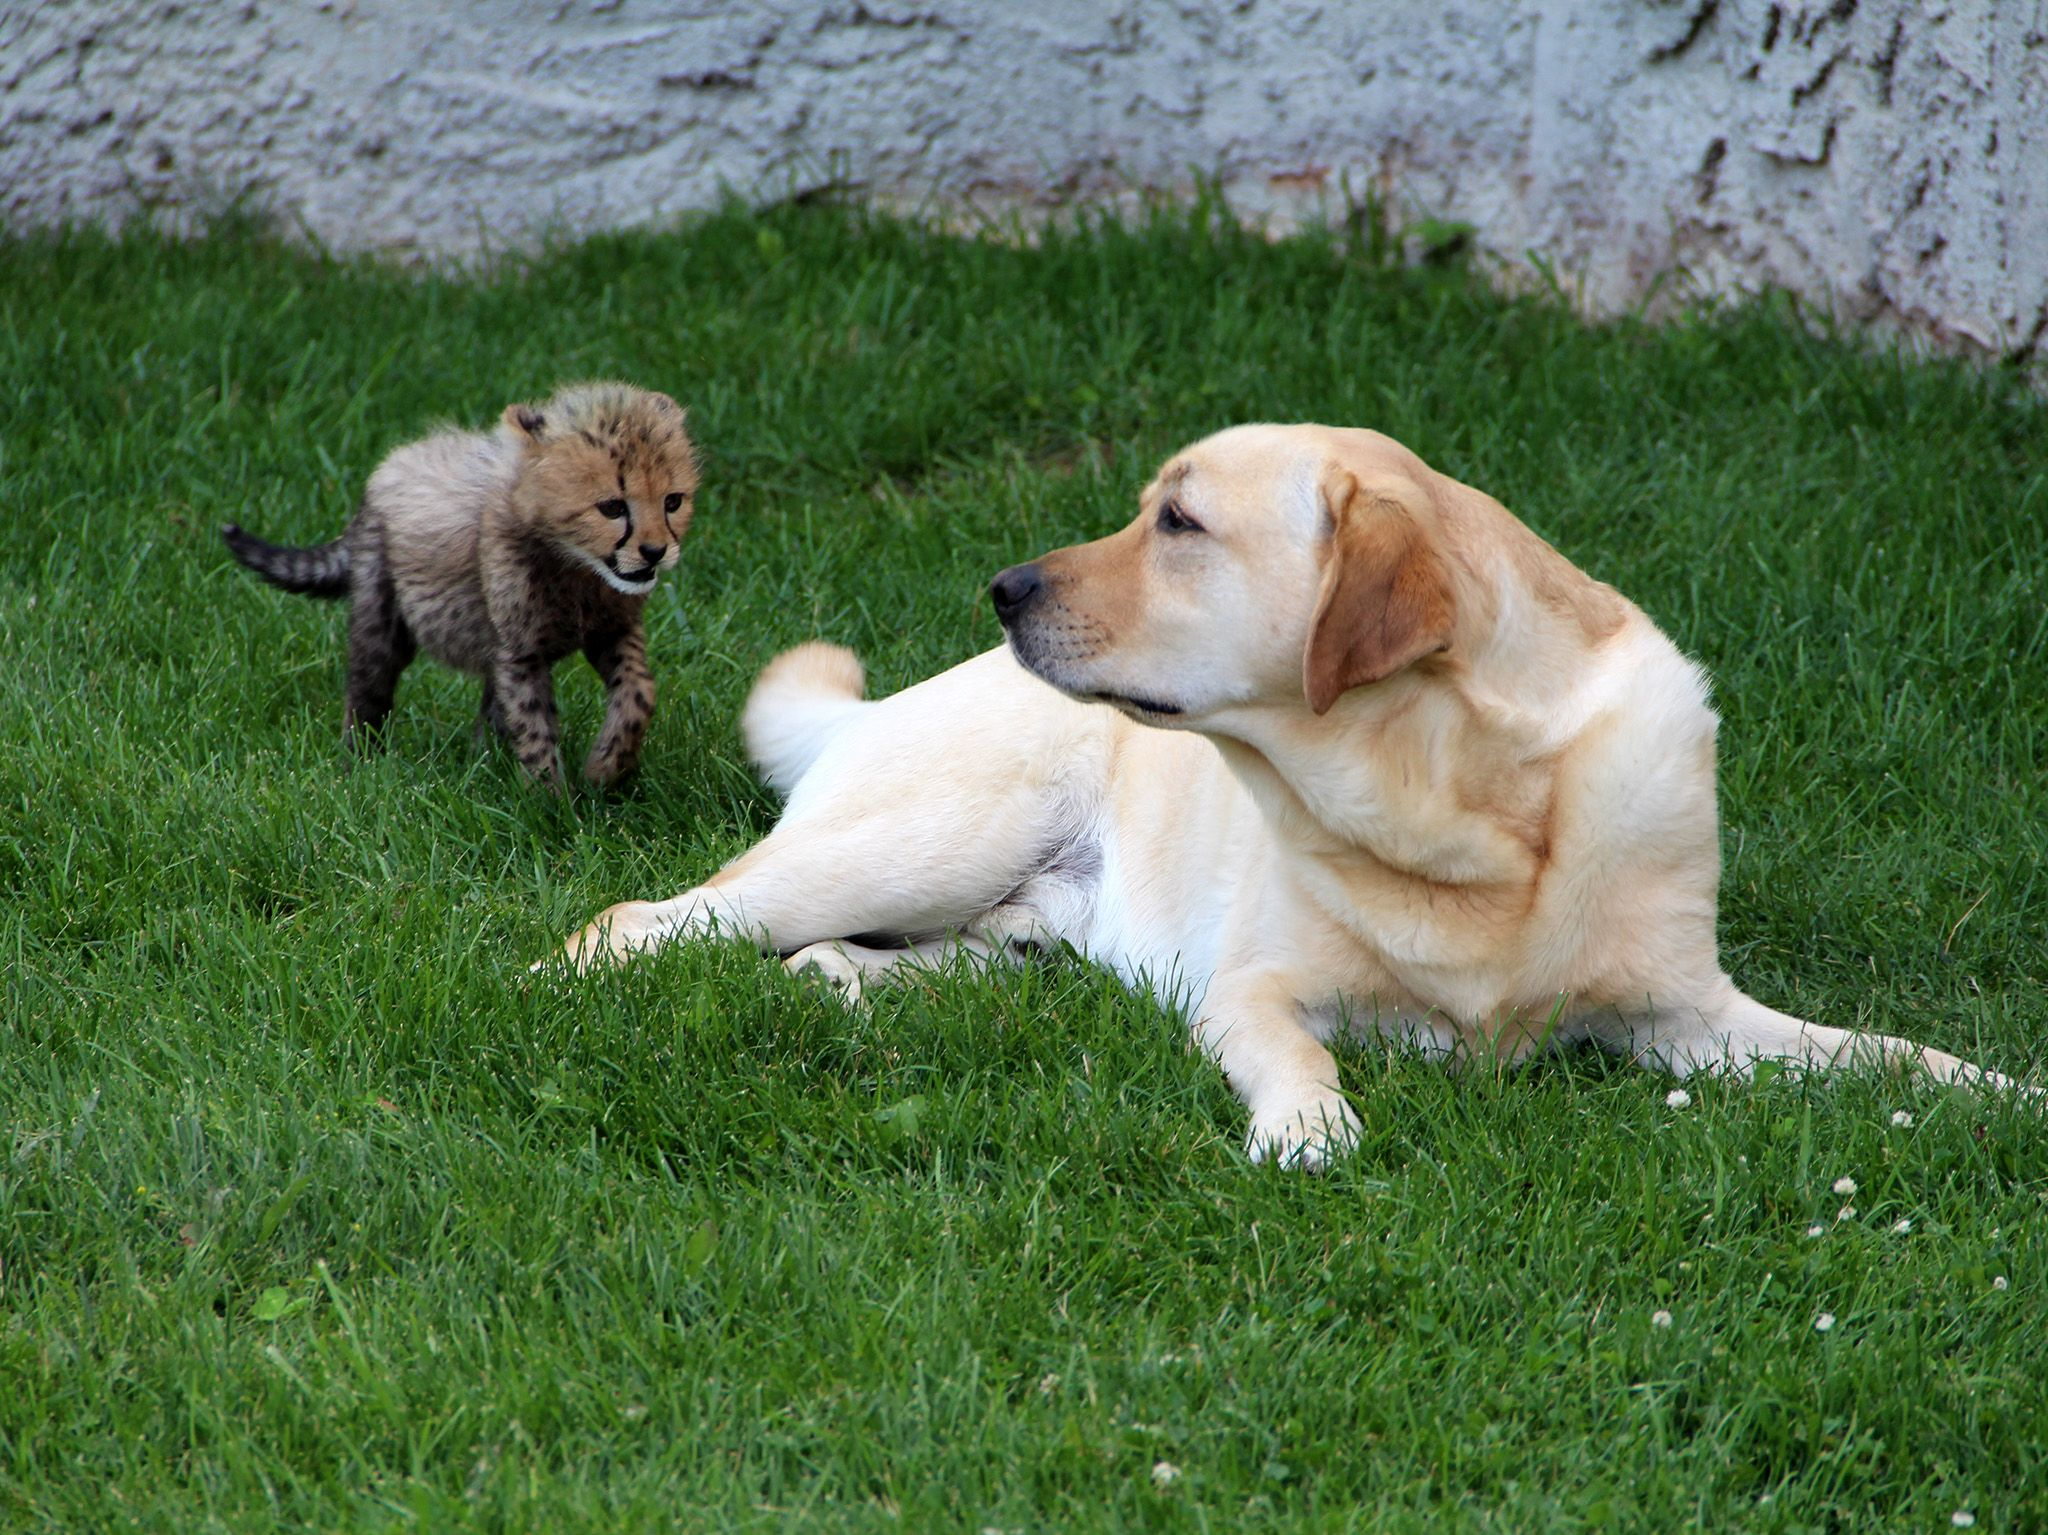 Powell, OH:  Debbie the cheetah cub sneaks up behind Colby the golden retriever in the yard. ... [Photo of the day - ژولیه 2019]